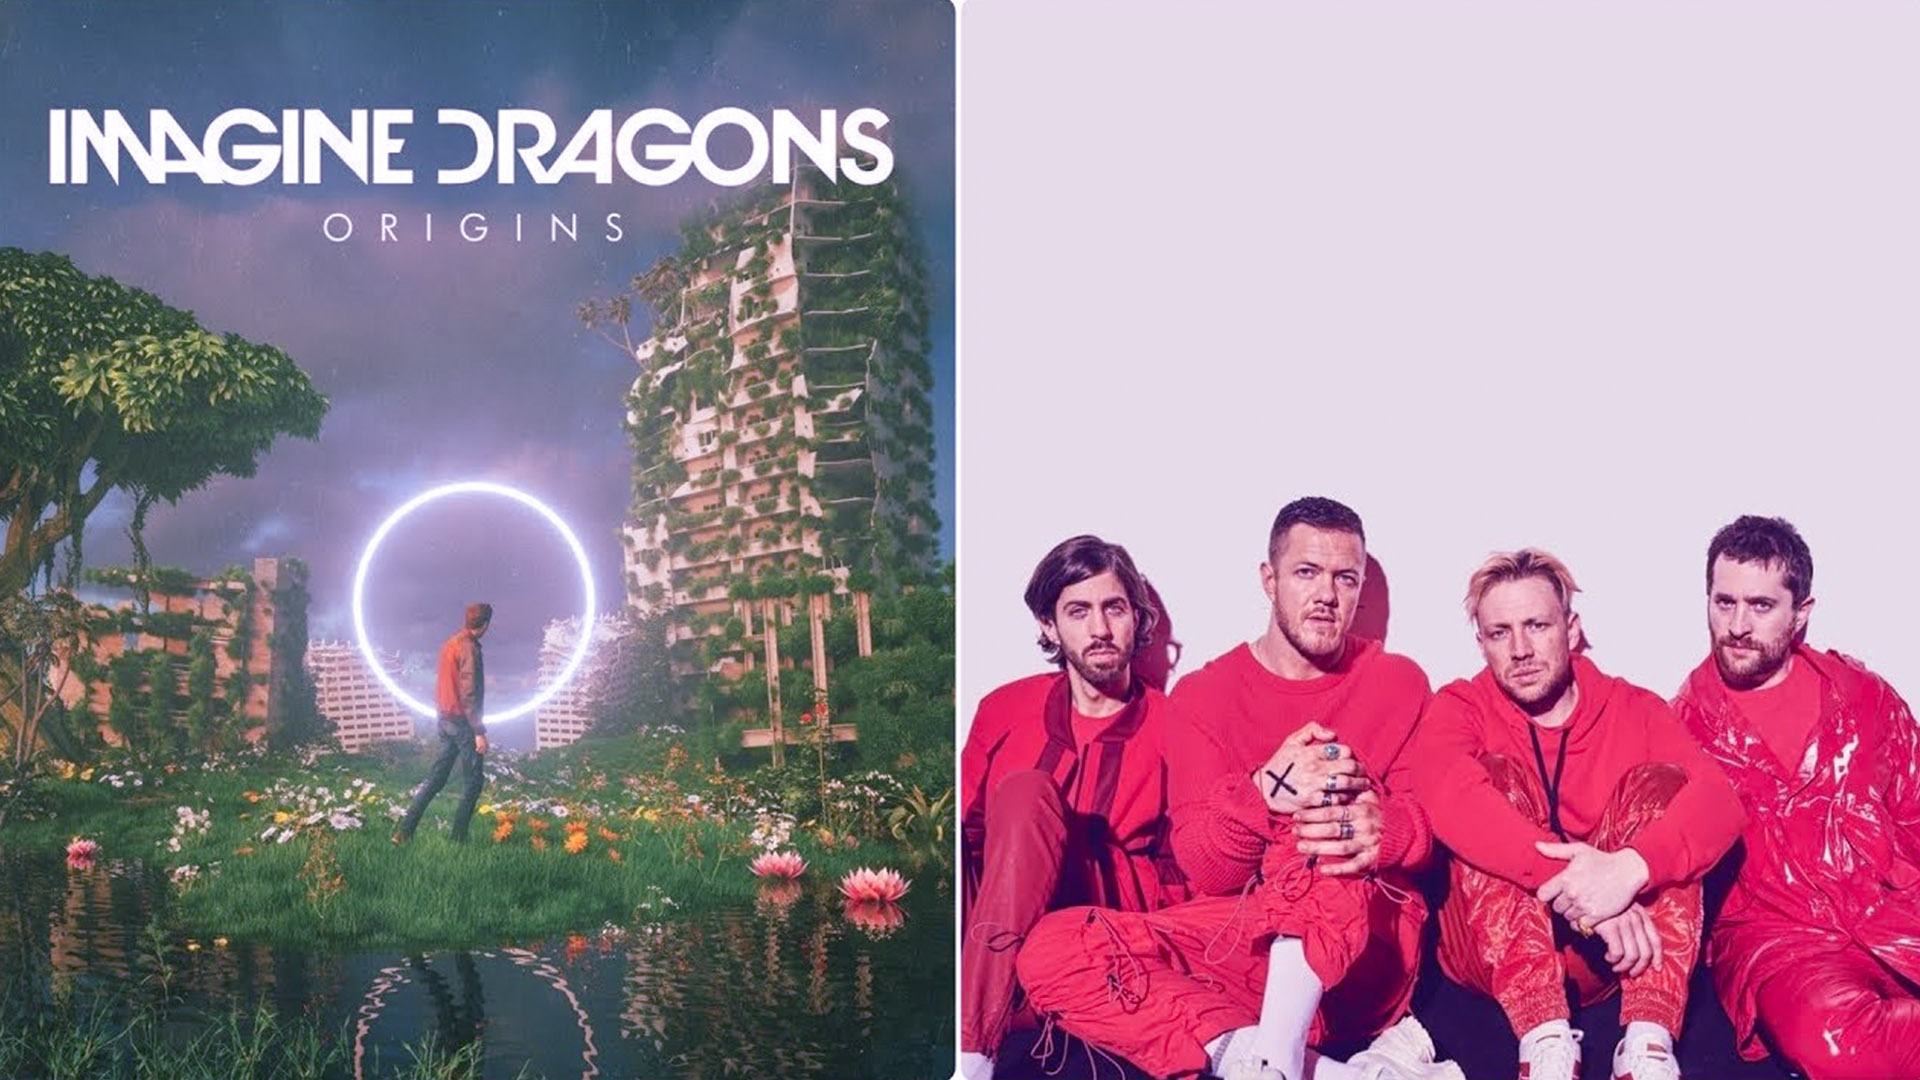 imagine dragons origins  Imagine Dragons' Album Origins Is Out Now | Learn Where You Can ...